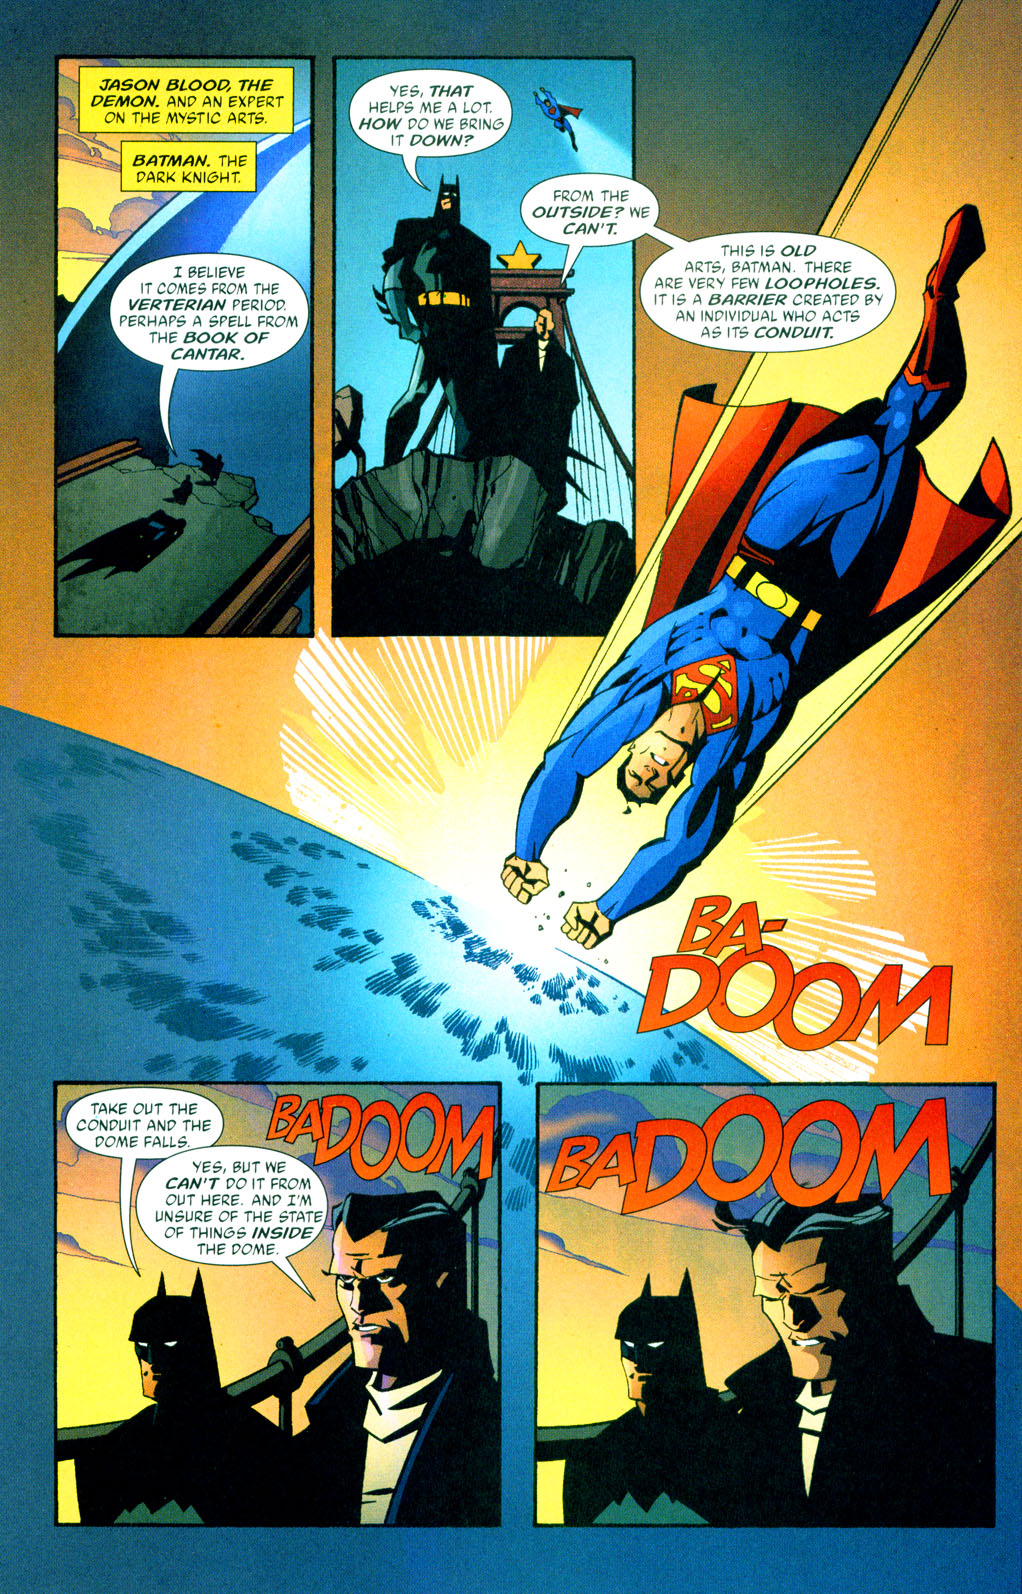 green arrow v2 37 - 05Superman Batman Jason Blood.jpg